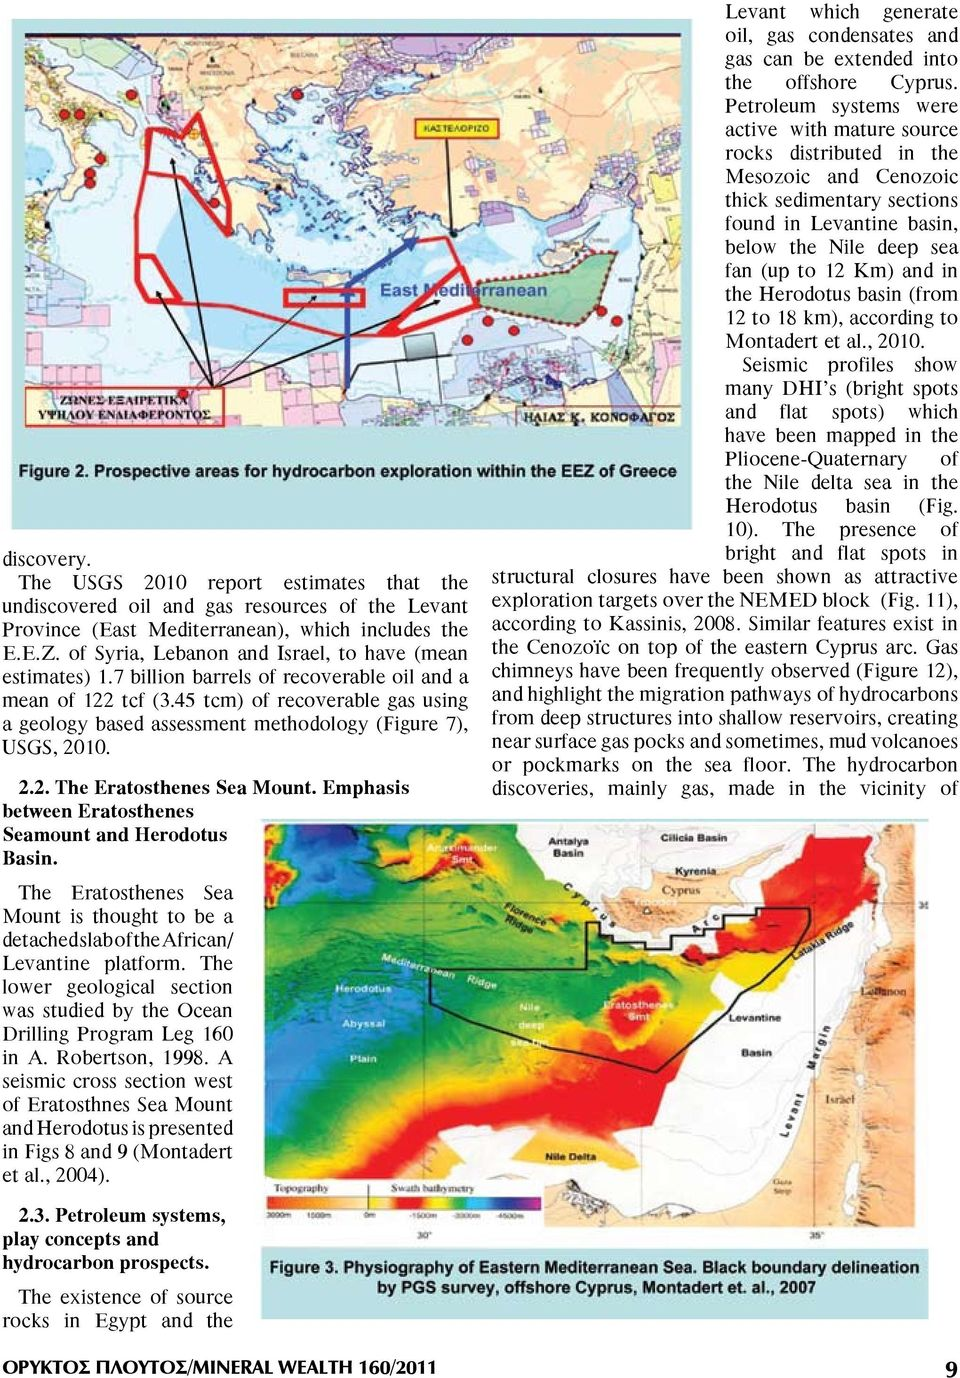 45 tcm) of recoverable gas using a geology based assessment methodology (Figure 7), USGS, 2010. 2.2. The Eratosthenes Sea Mount. Emphasis between Eratosthenes Seamount and Herodotus Basin.